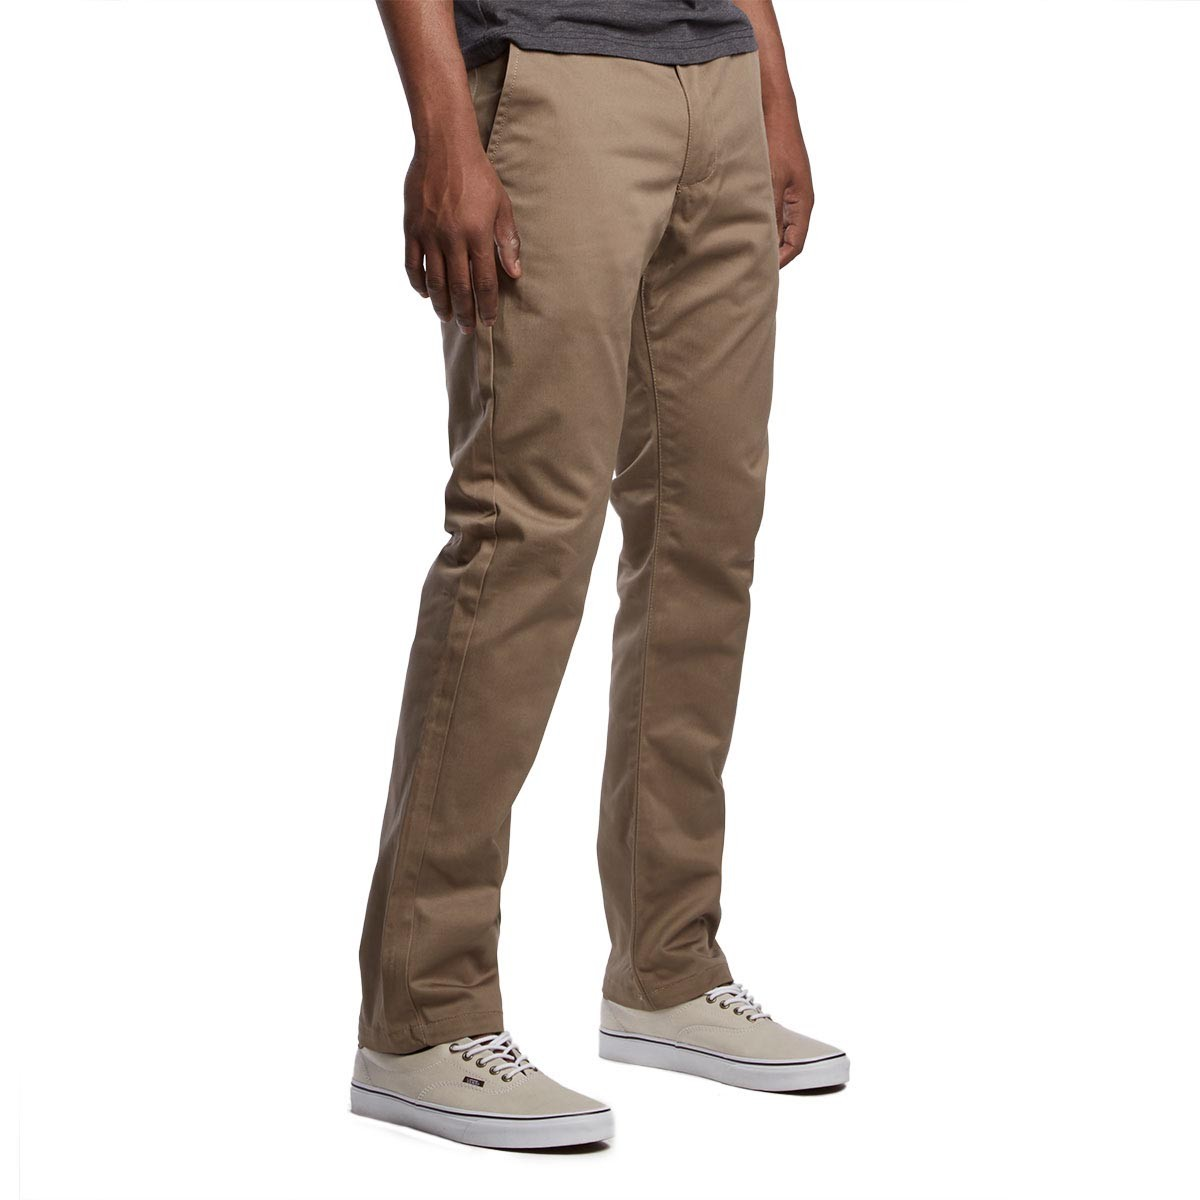 Wonderful Womens Chino PantsBuy Cheap Womens Chino Pants Lots From China Womens